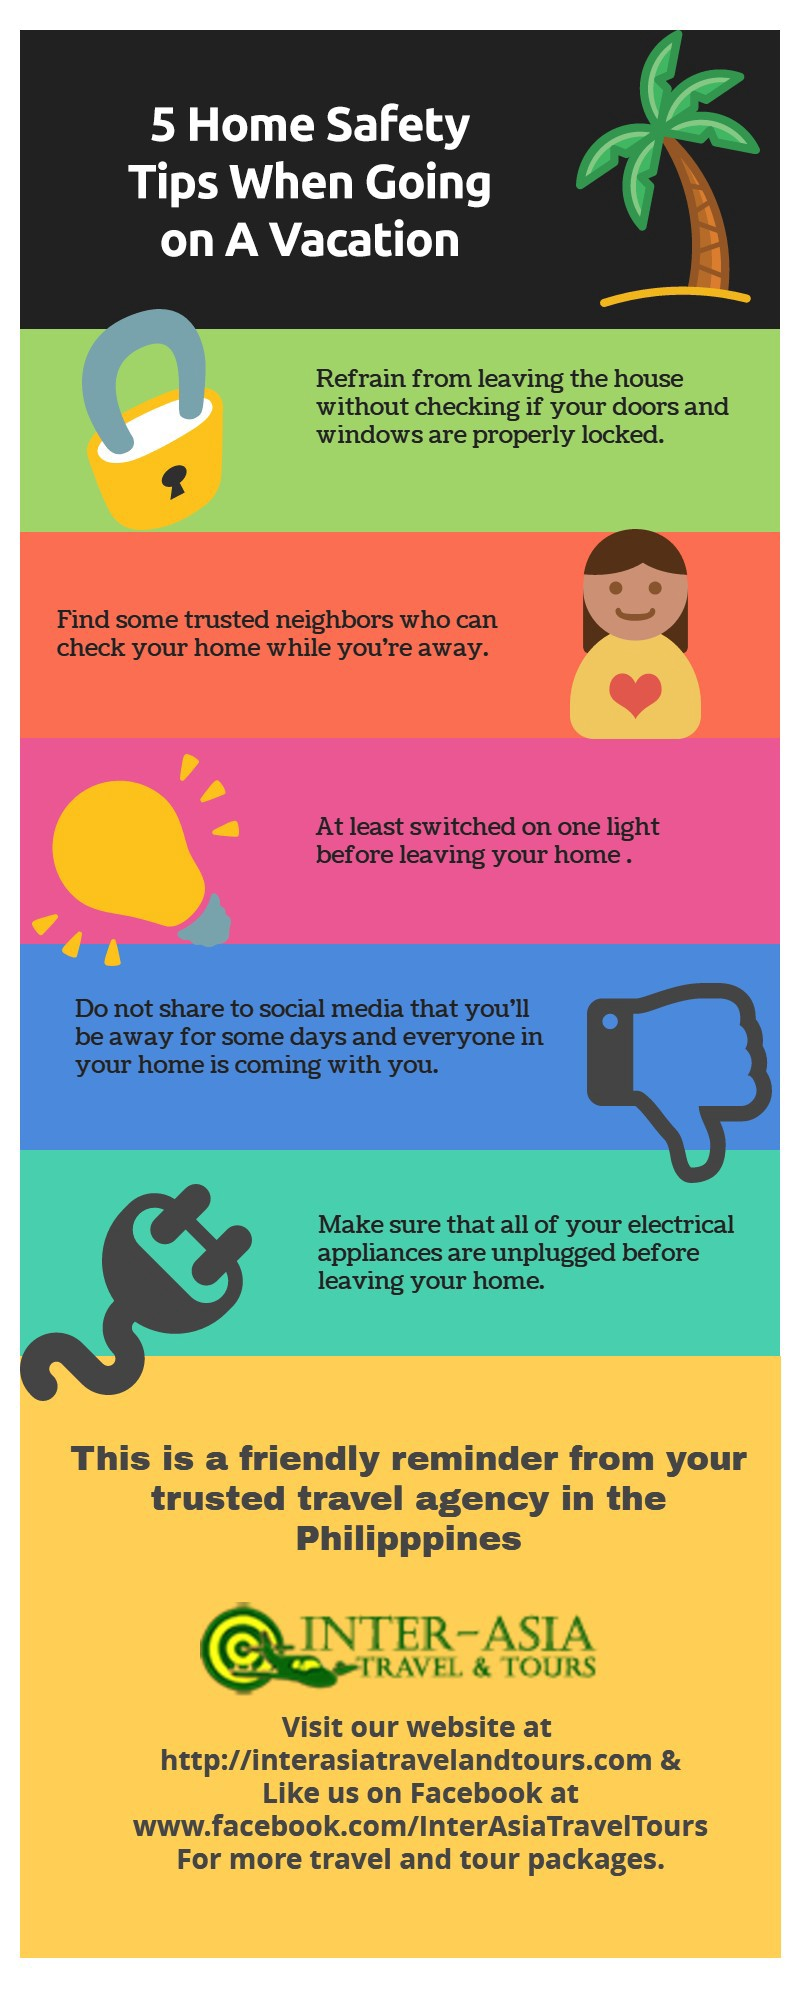 5 Home Safety Tips When Going On A Vacation – Inter-Asia ...